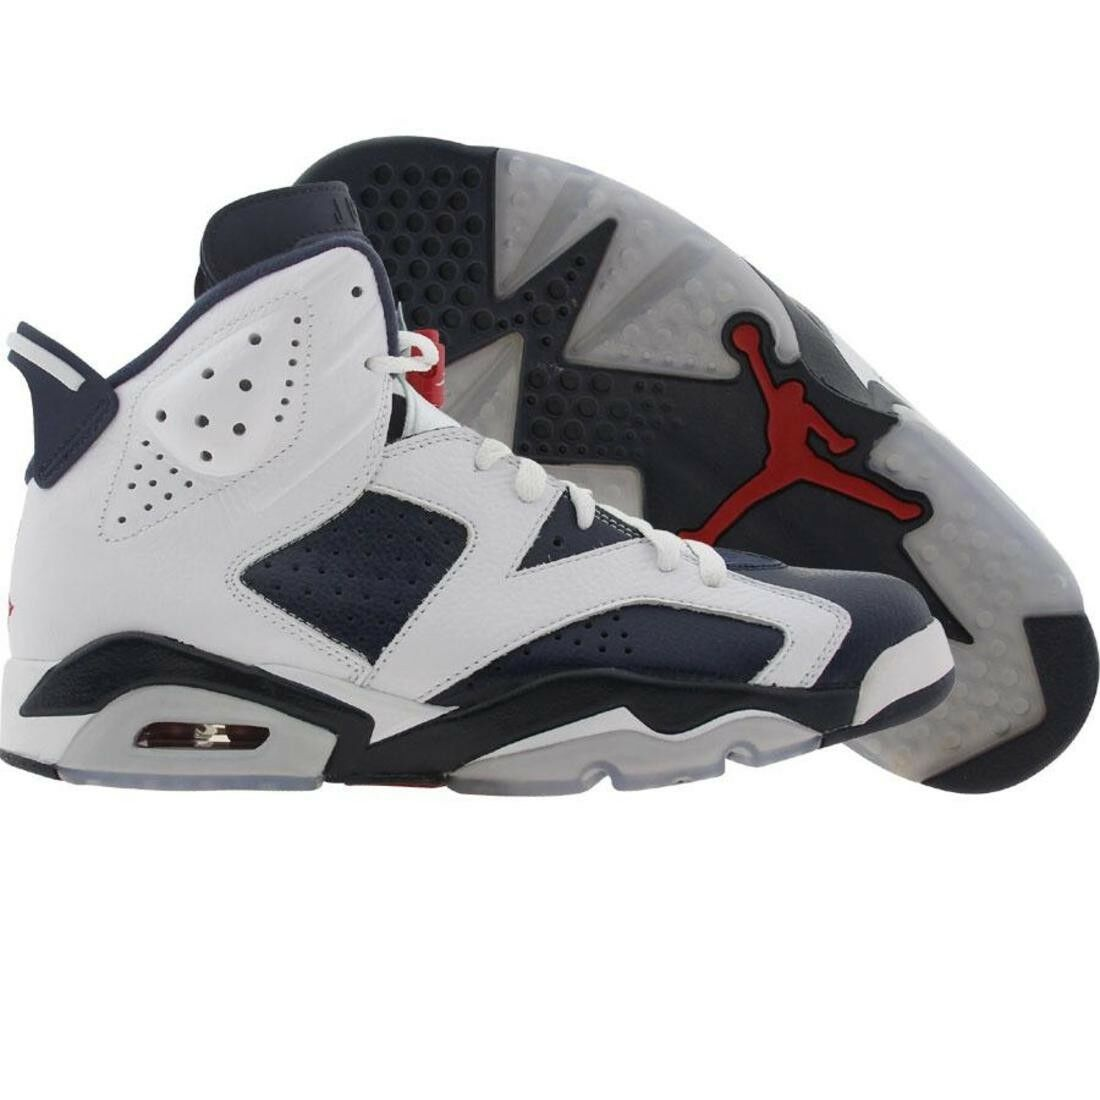 $380 New Vintage Nike Air Jordan 6 VI Retro - Olympic 2012 white navy /red 38